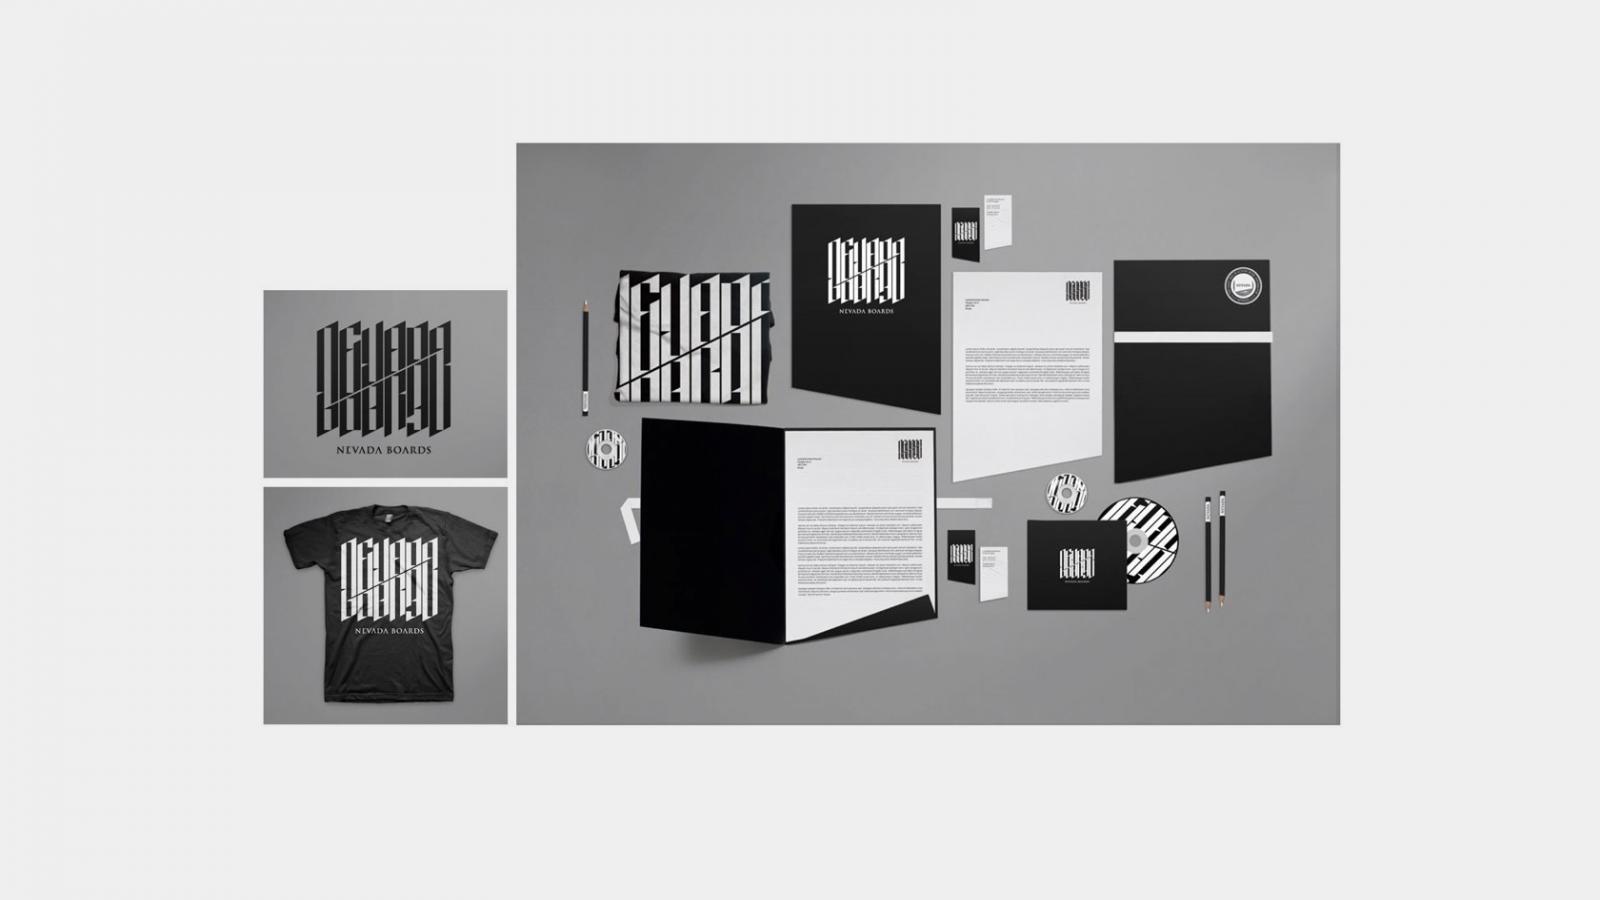 Palette 01: Black & White - New Monochrome Graphics